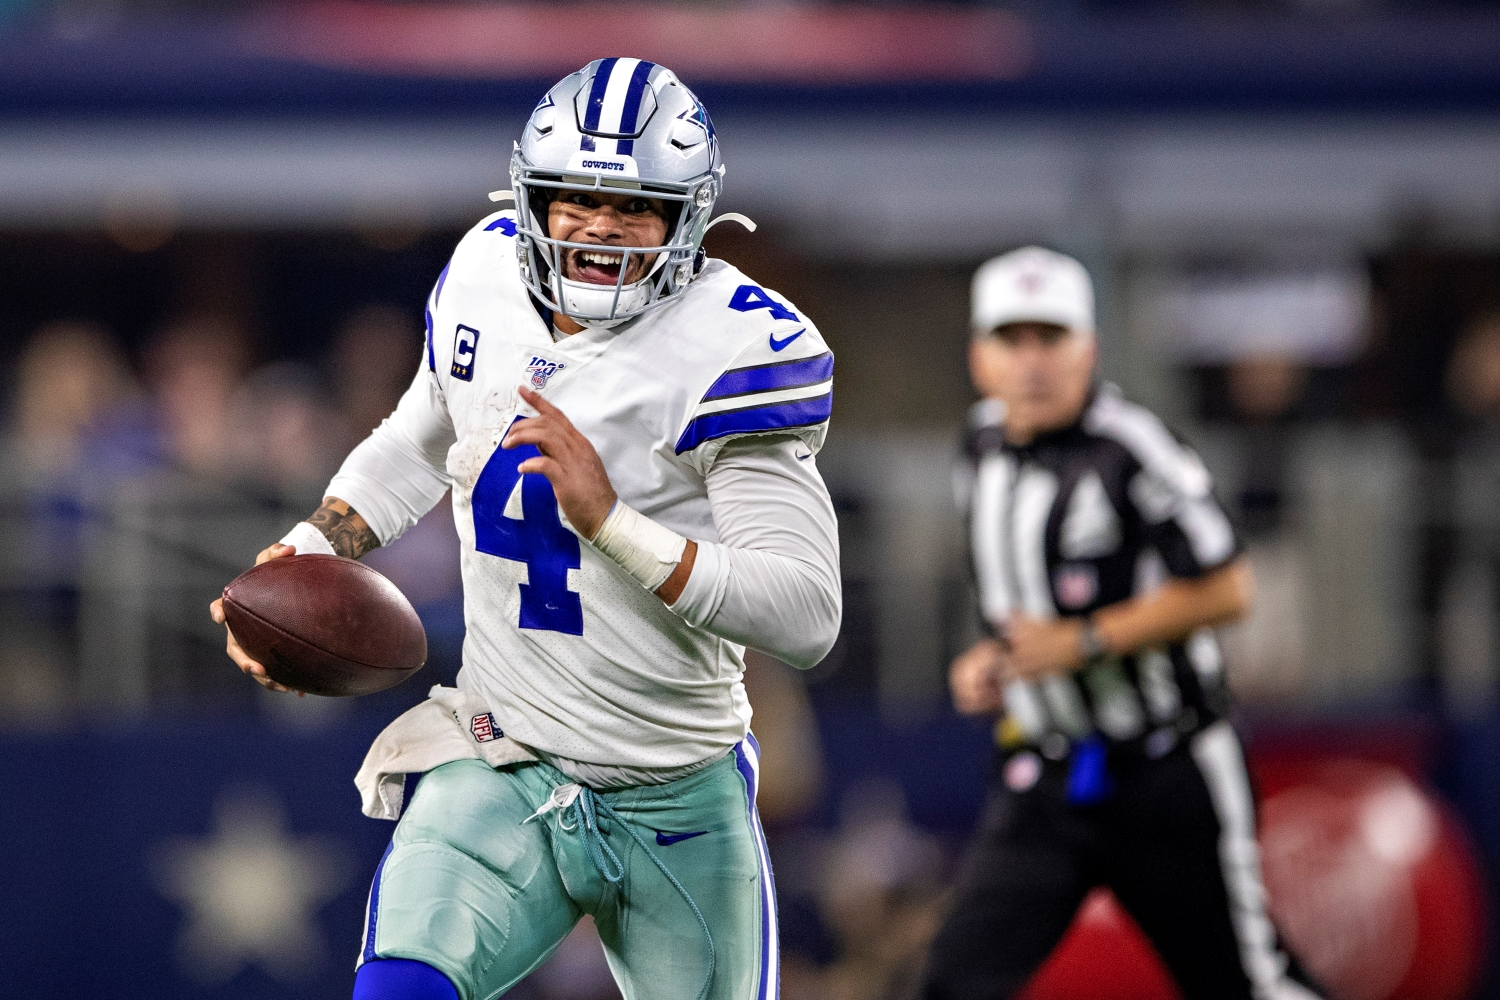 Dak Prescott's Dad Sends Inspiring Message After the Cowboys Invest $160 Million in His Son's Future